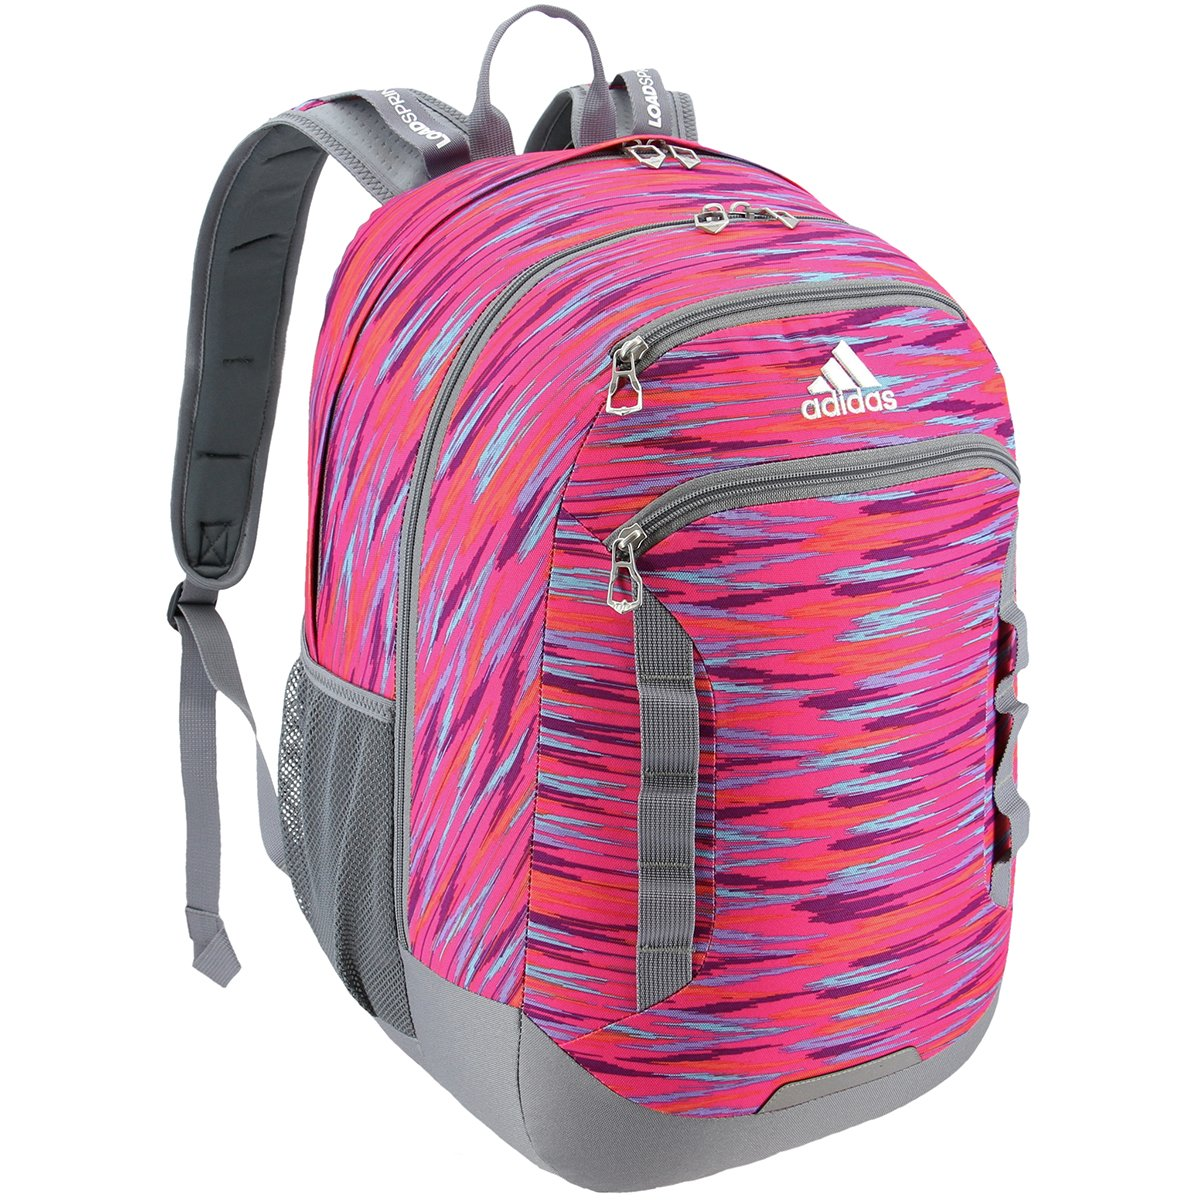 adidas Excel III Backpack, Shock Pink Twister/Black/Shock Pink, One Size